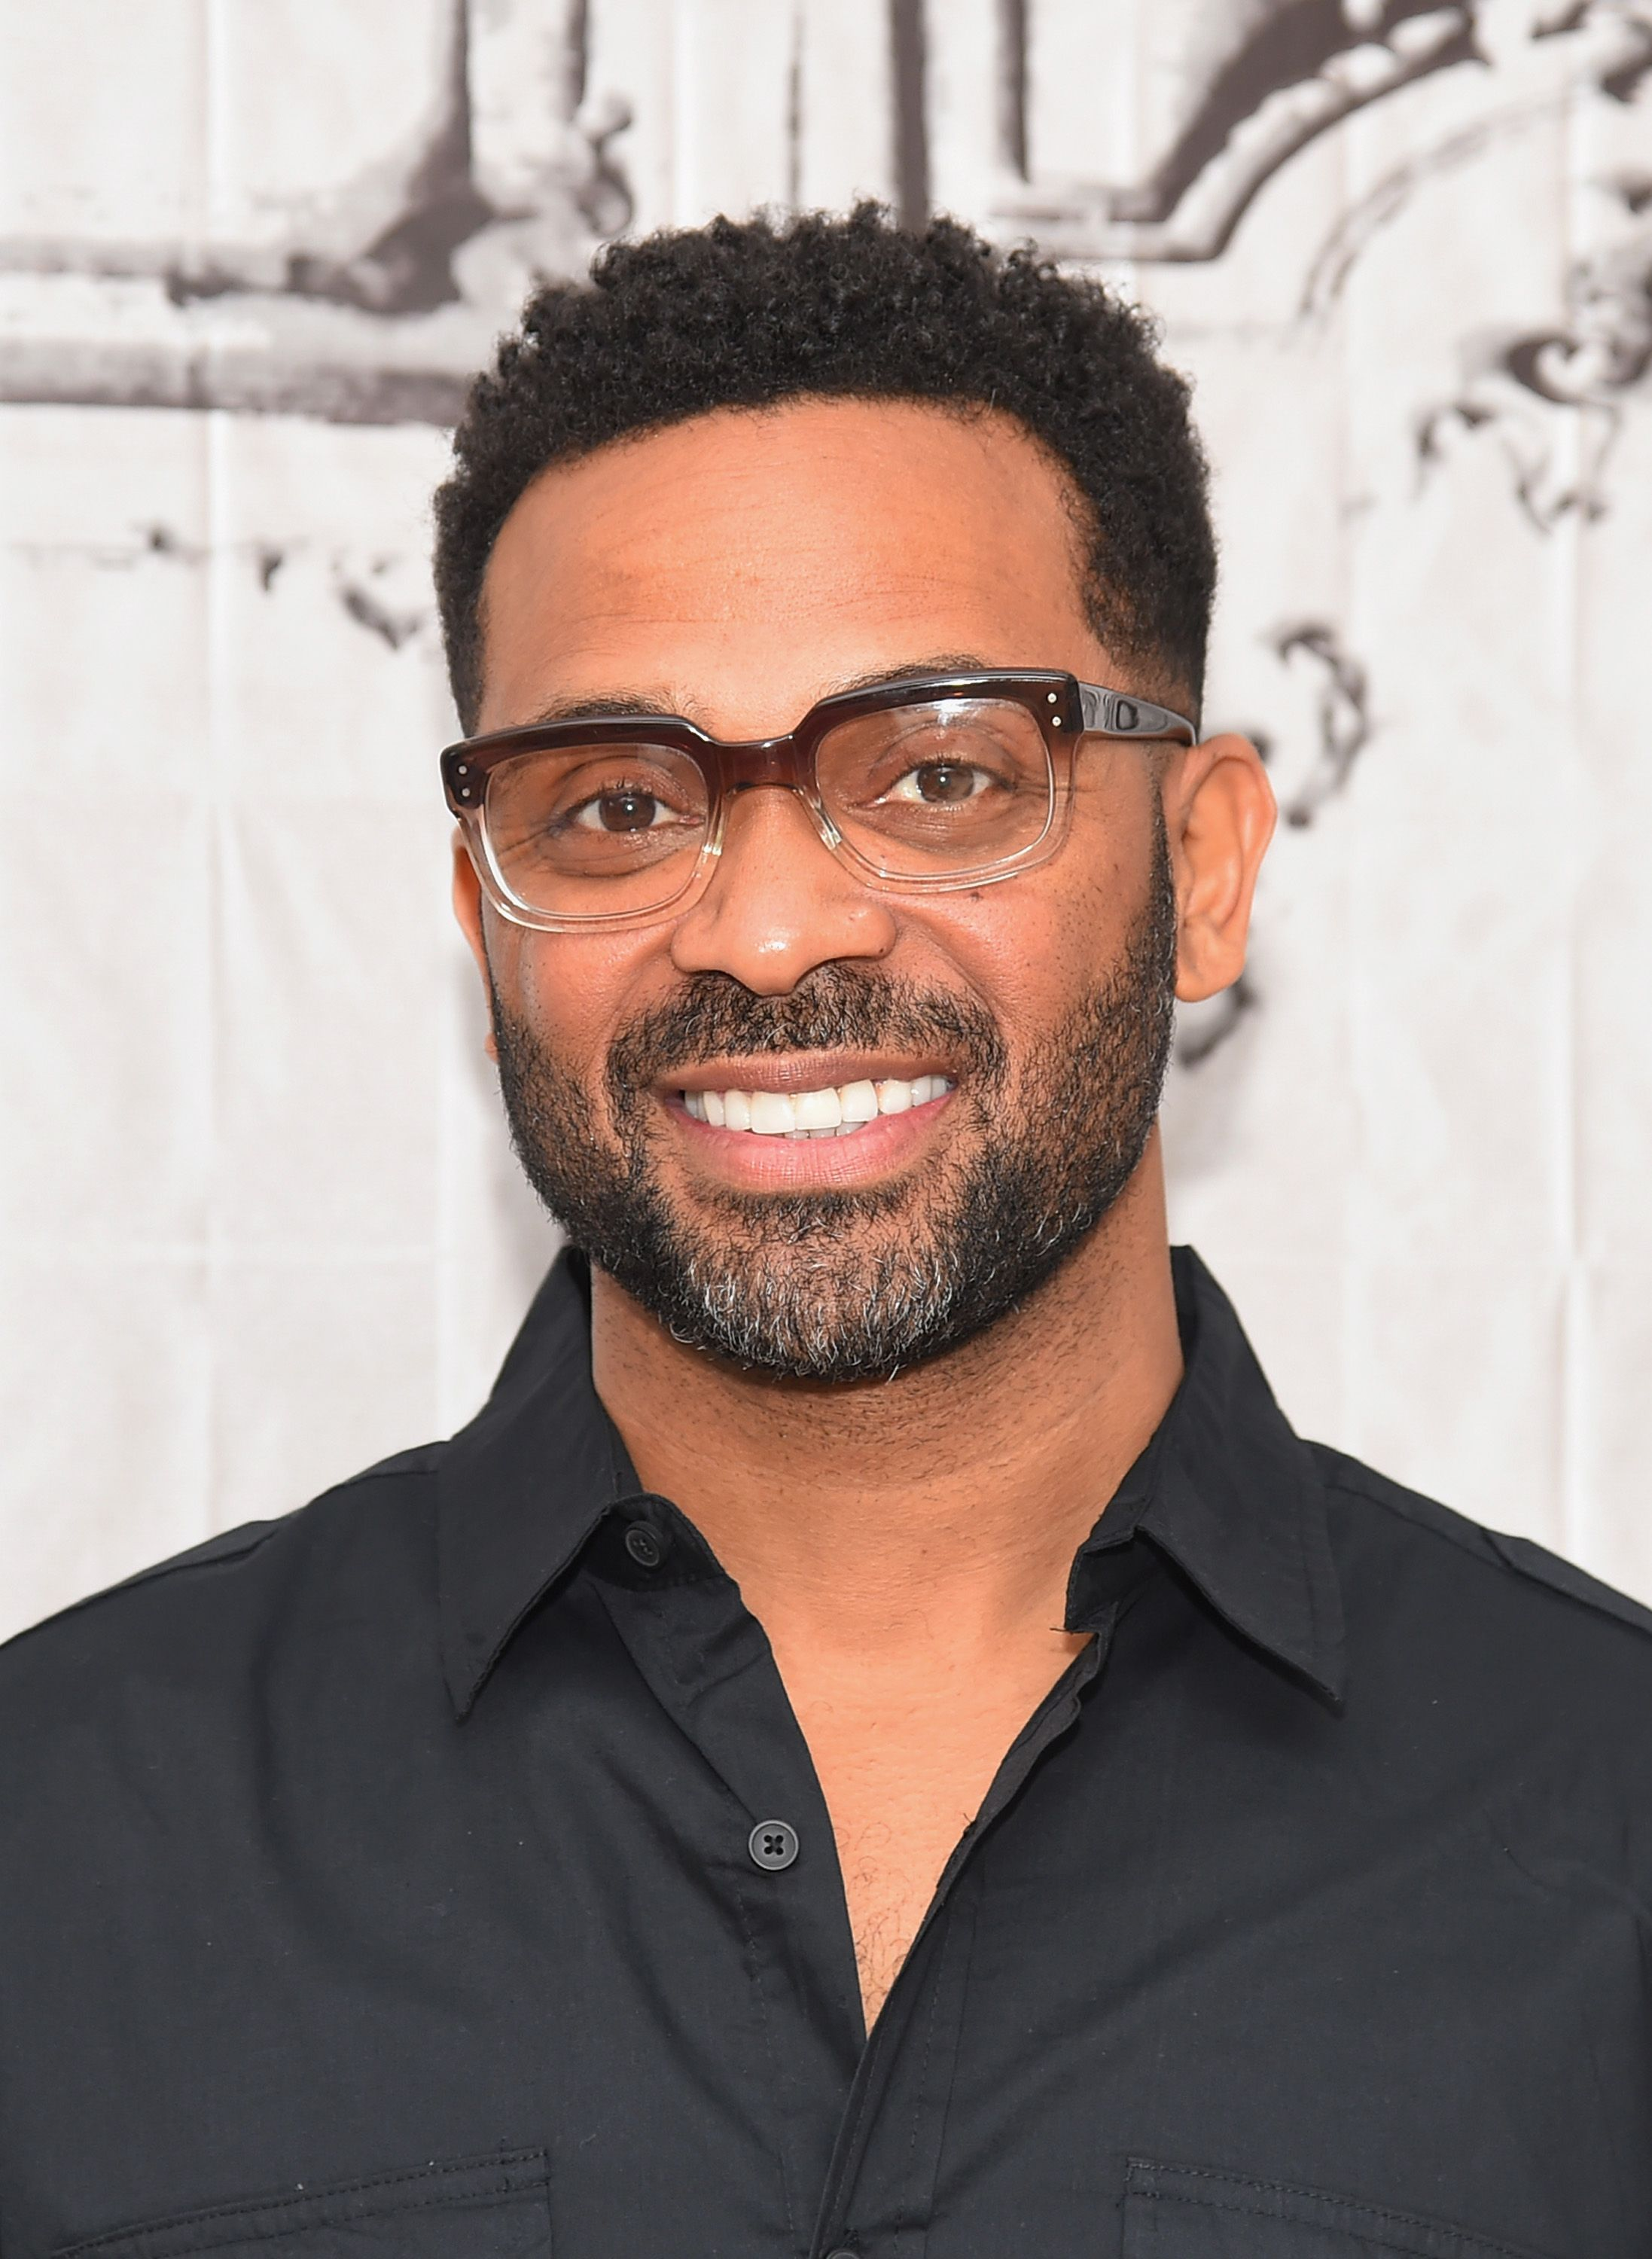 """Mike Epps at the """"AOL BUILD Speaker Series Presents: Survivor's Remorse"""" at AOL Studios in New York on July 29, 2015 in New York City 